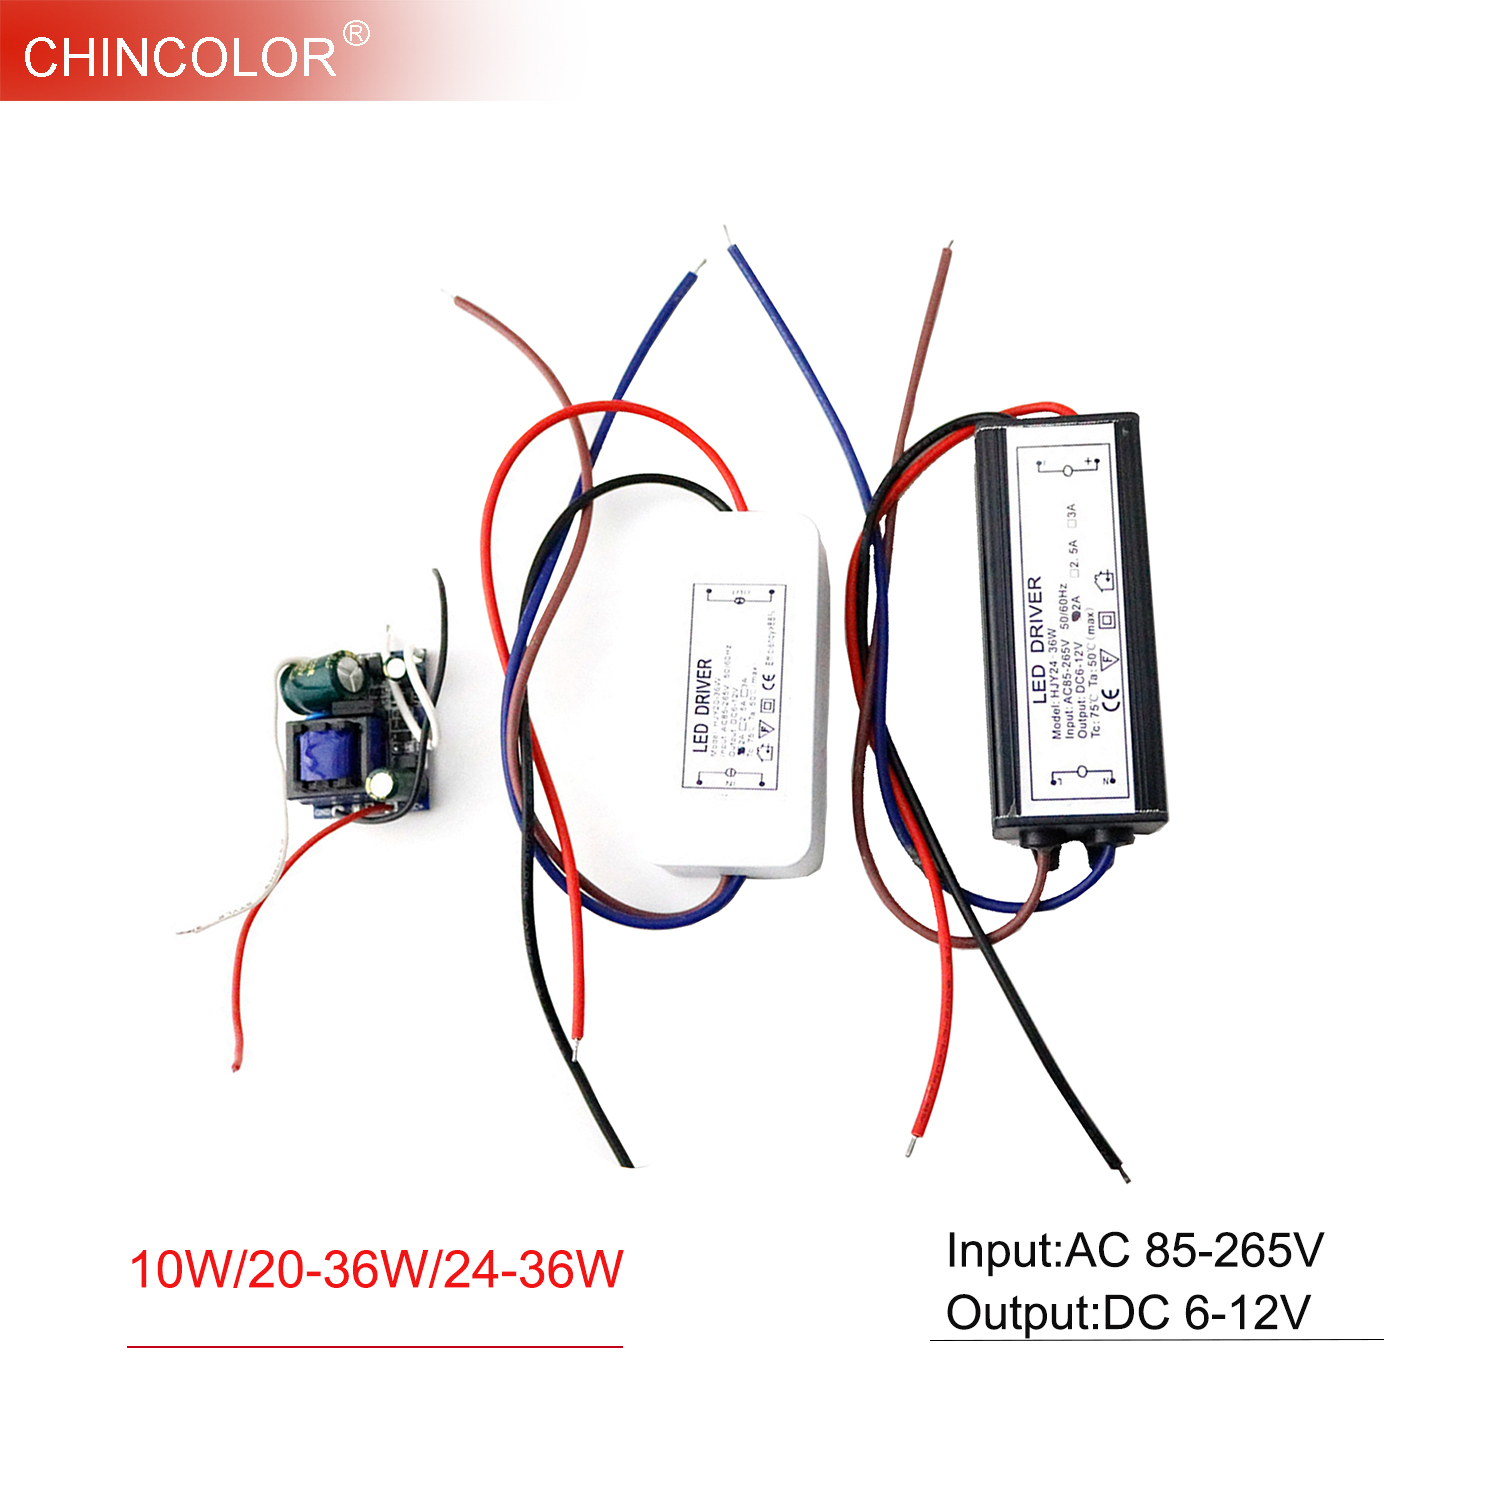 Results Of Top Driver Led 3w In Sadola Constant Current Dimming 50w 700ma Power Supply Transformer 10w 20 36w 24 6v 12v 600ma 2a For 33w Input Ac85 265v Spot Light Flood Jq